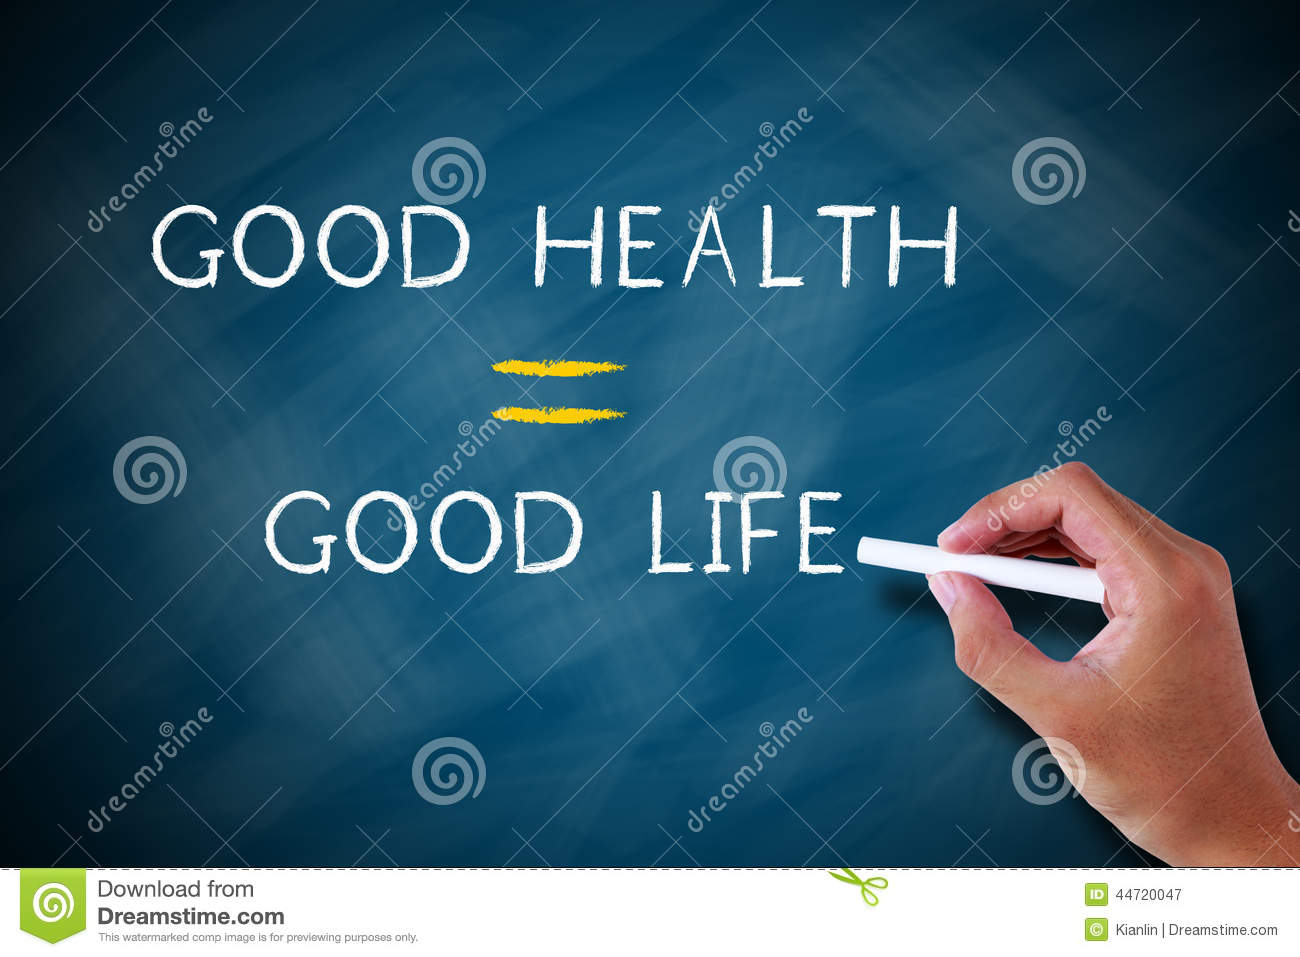 good-health-good-life-written-chalk-chalkboard-44720047.jpg